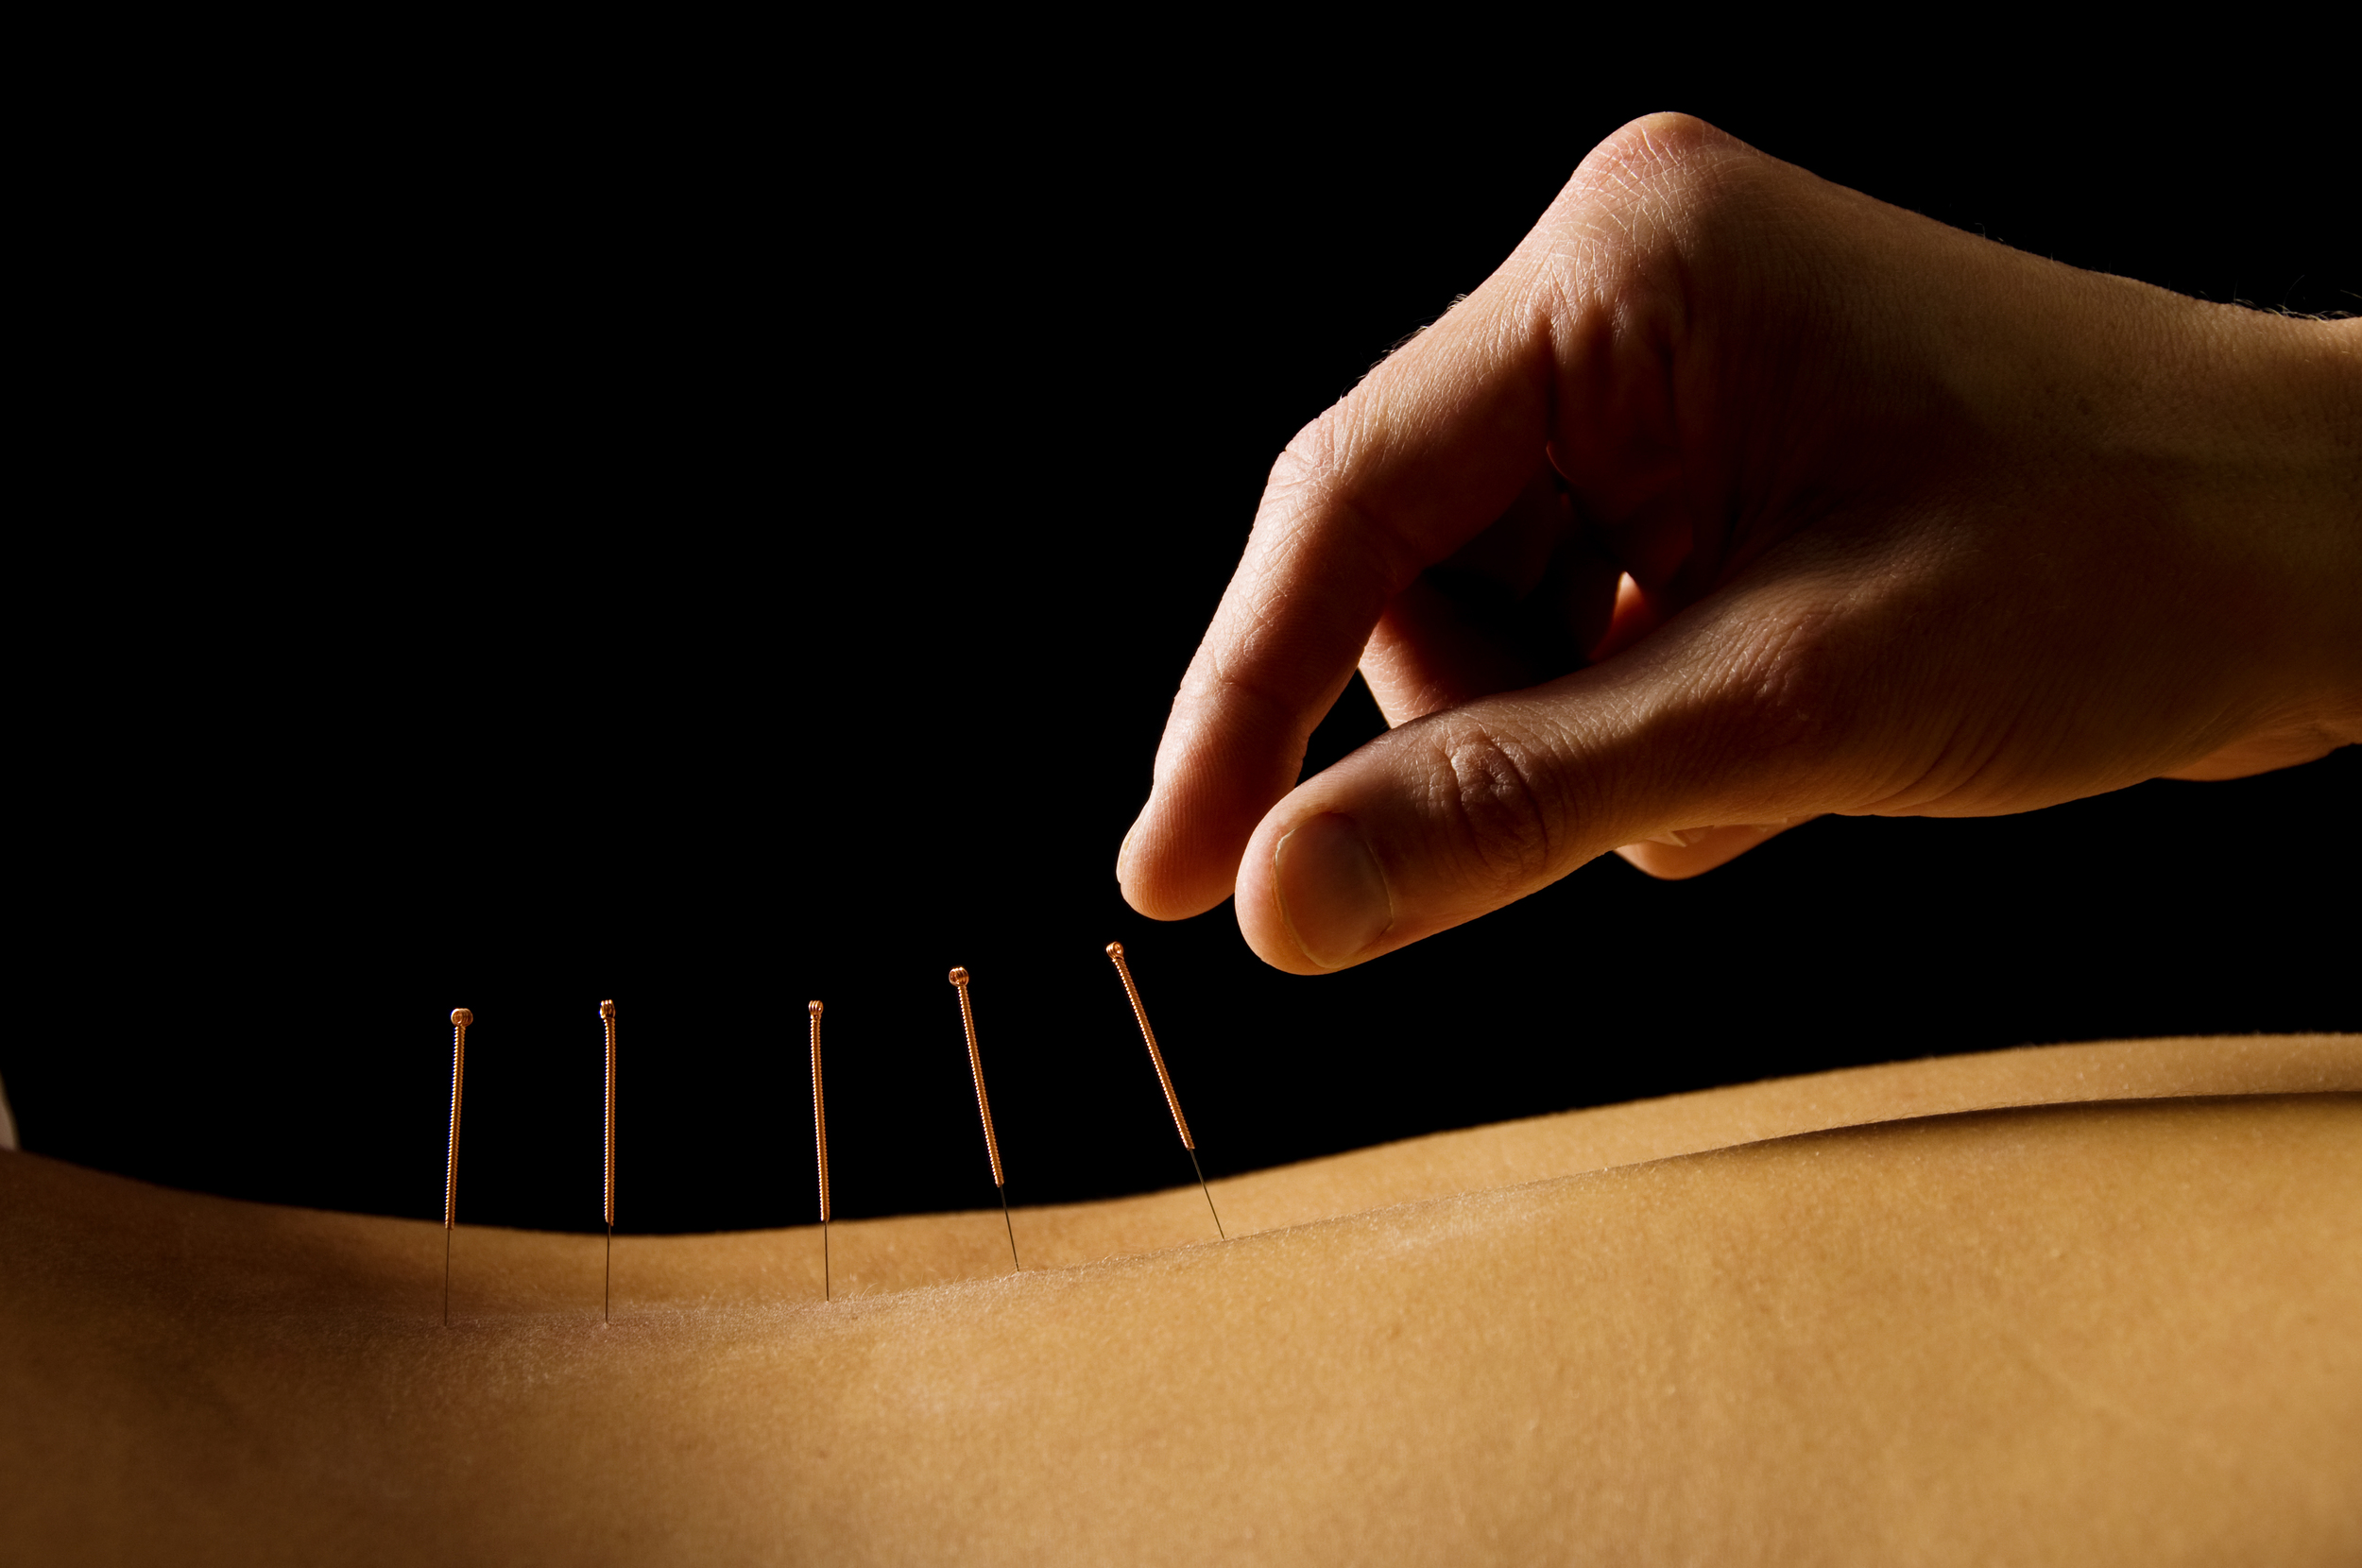 bigstock-Acupuncture-3093185 - spine needles.jpg